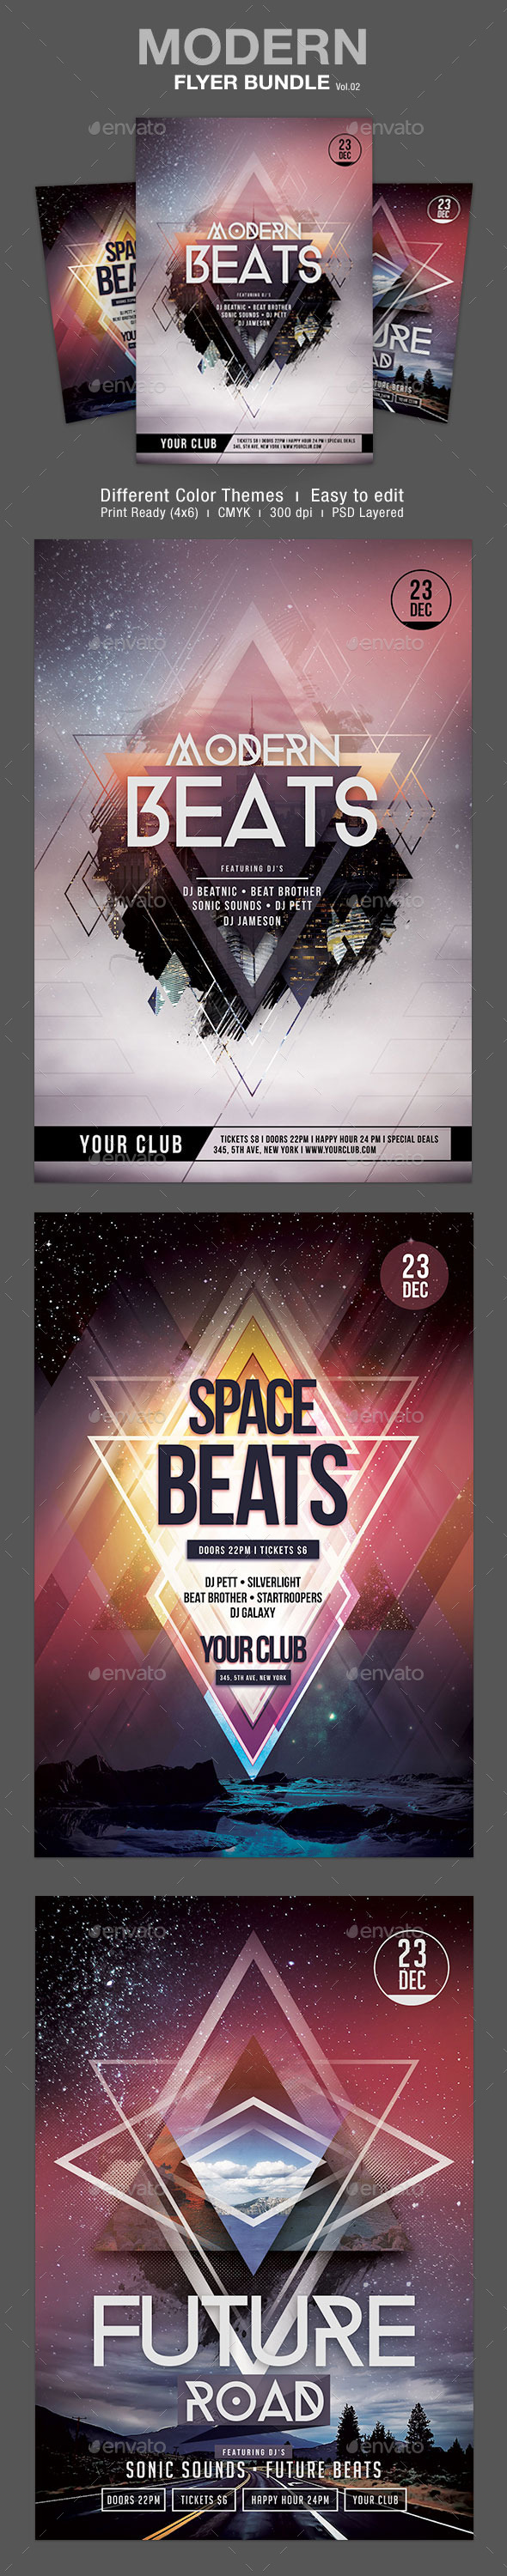 GraphicRiver Modern Flyer Bundle Vol.02 9309959